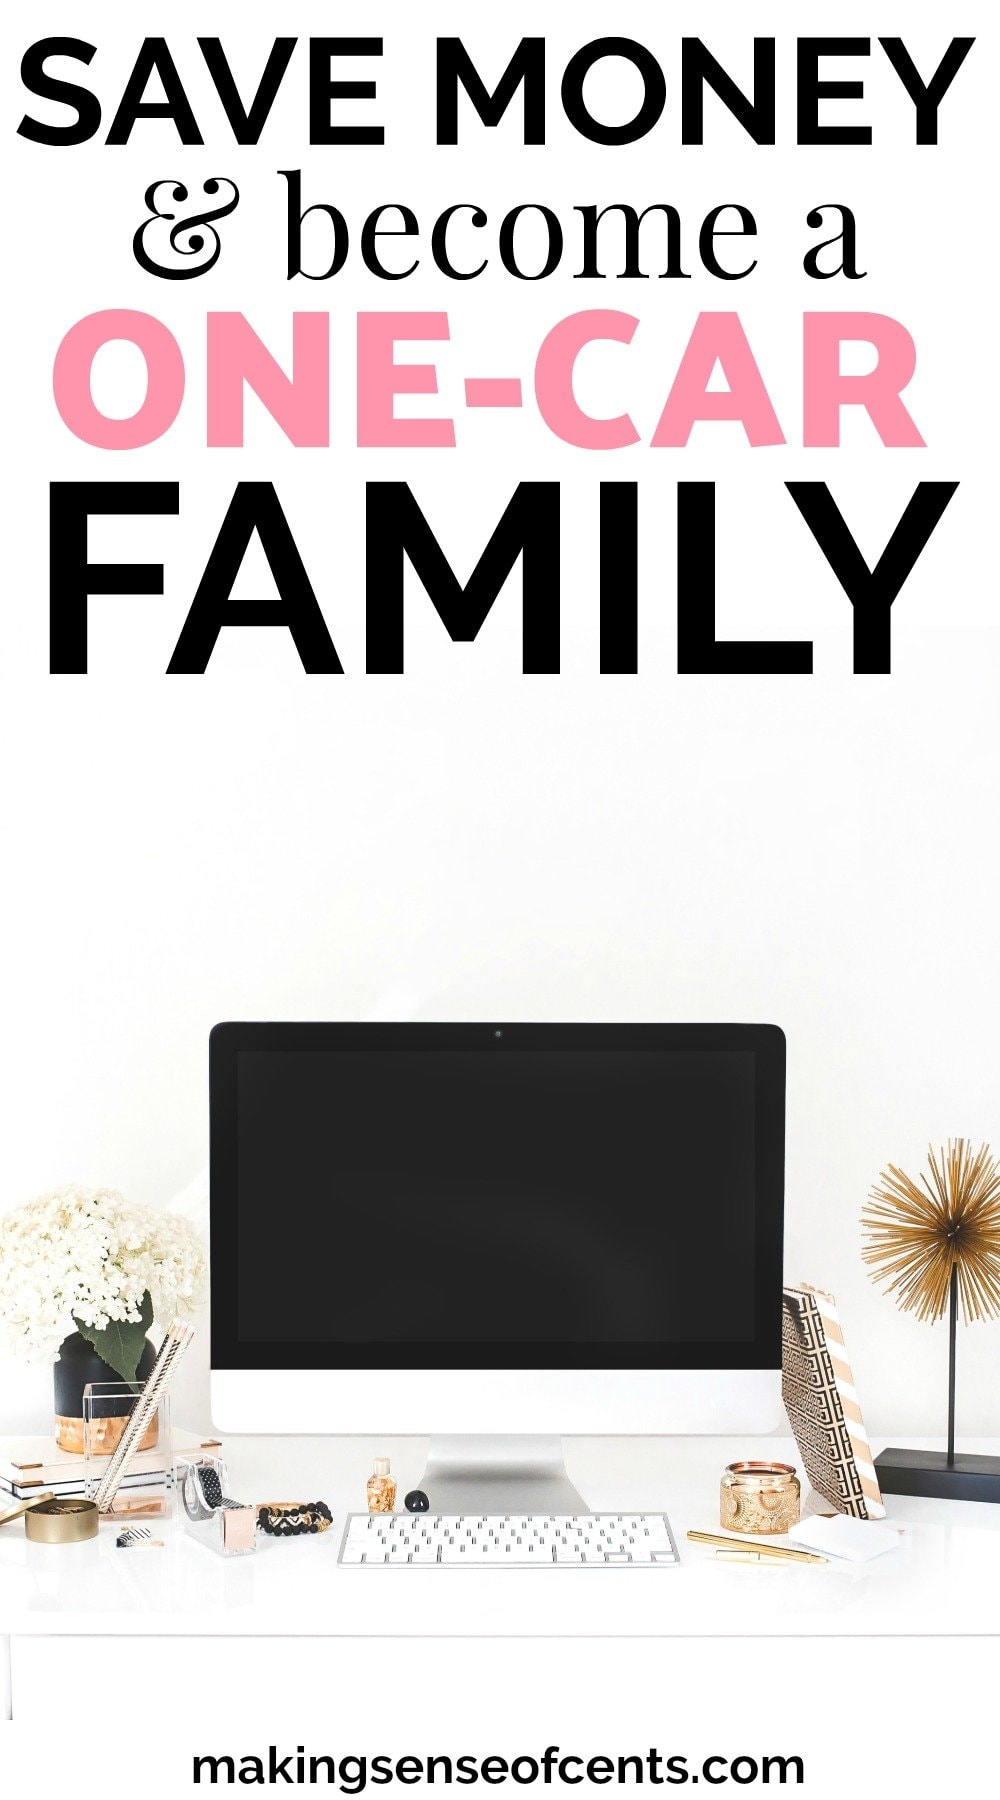 We're Now Saving Over $7,000 A Year By Becoming A One Car Family Plus Monthly Life Update